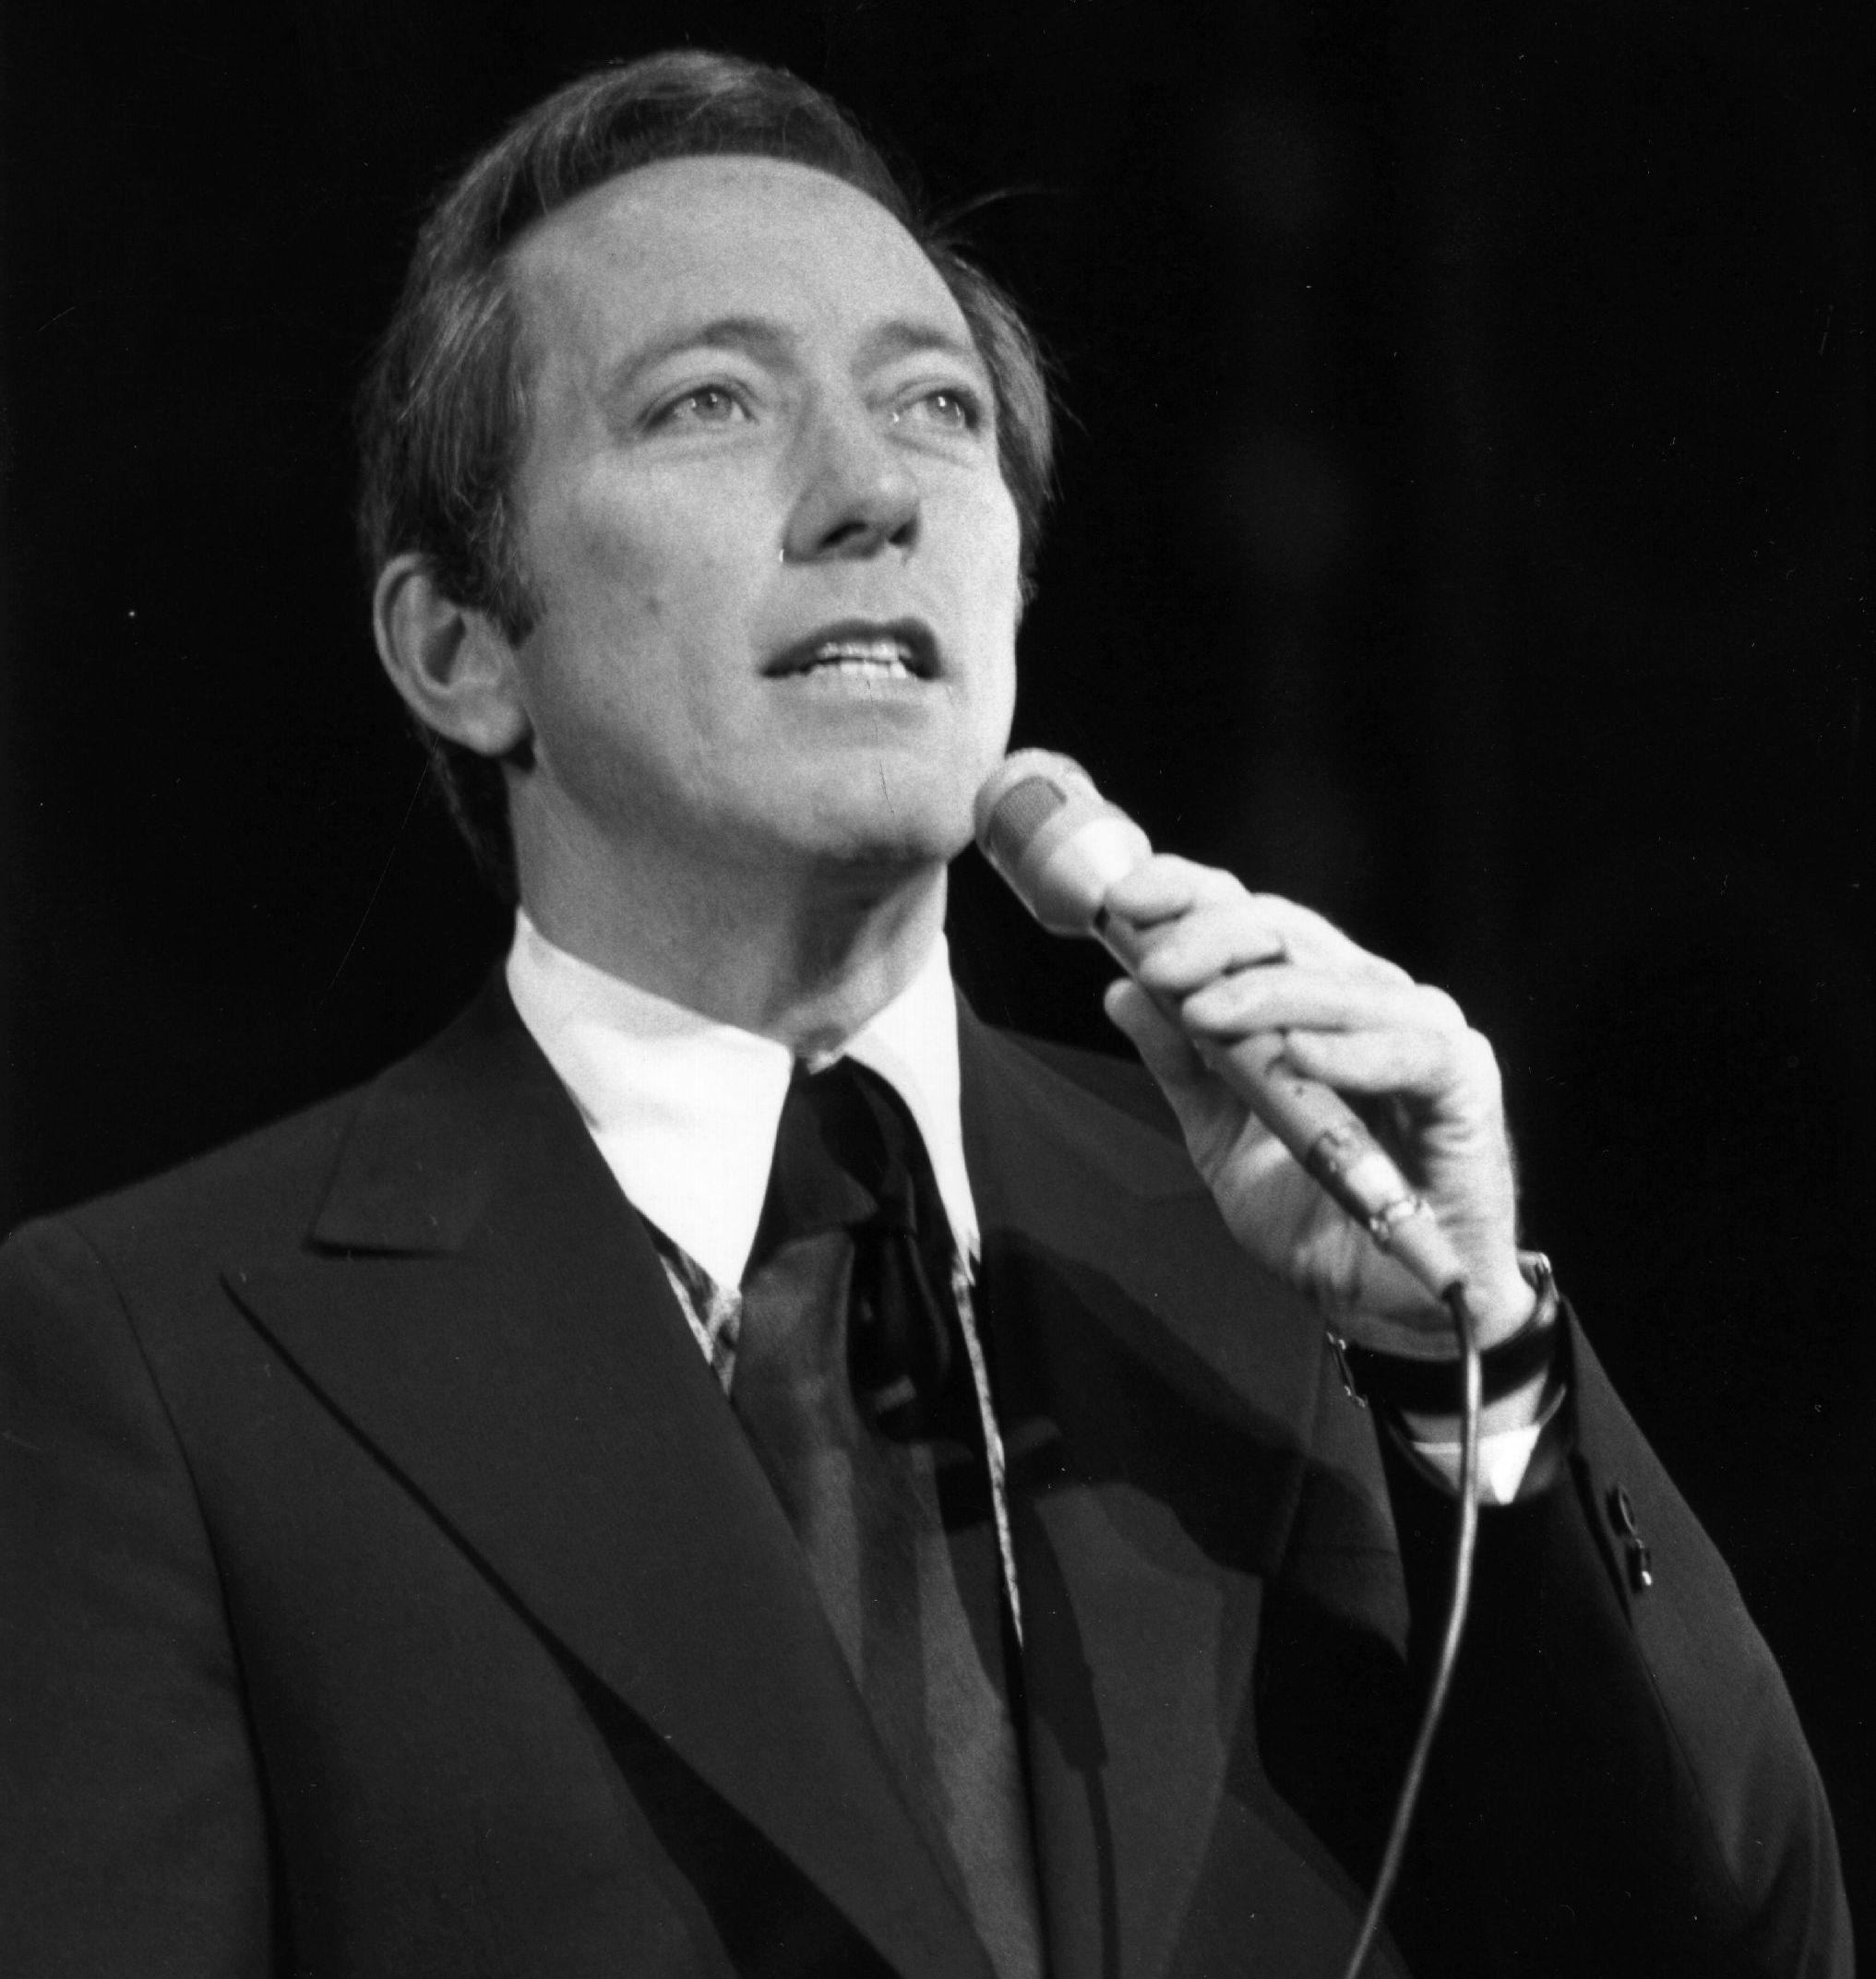 Christmas Crooner Specials 2020 Andy Williams Dies; Crooner Was Known For 'Moon River,' Christmas